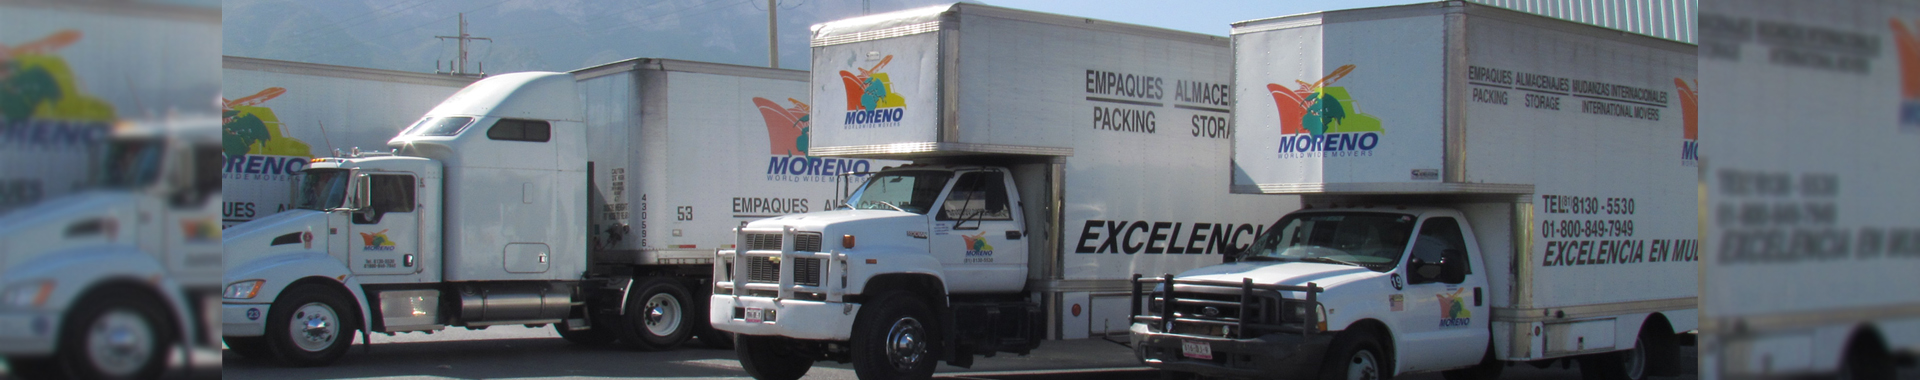 Domestic moving services in mexico